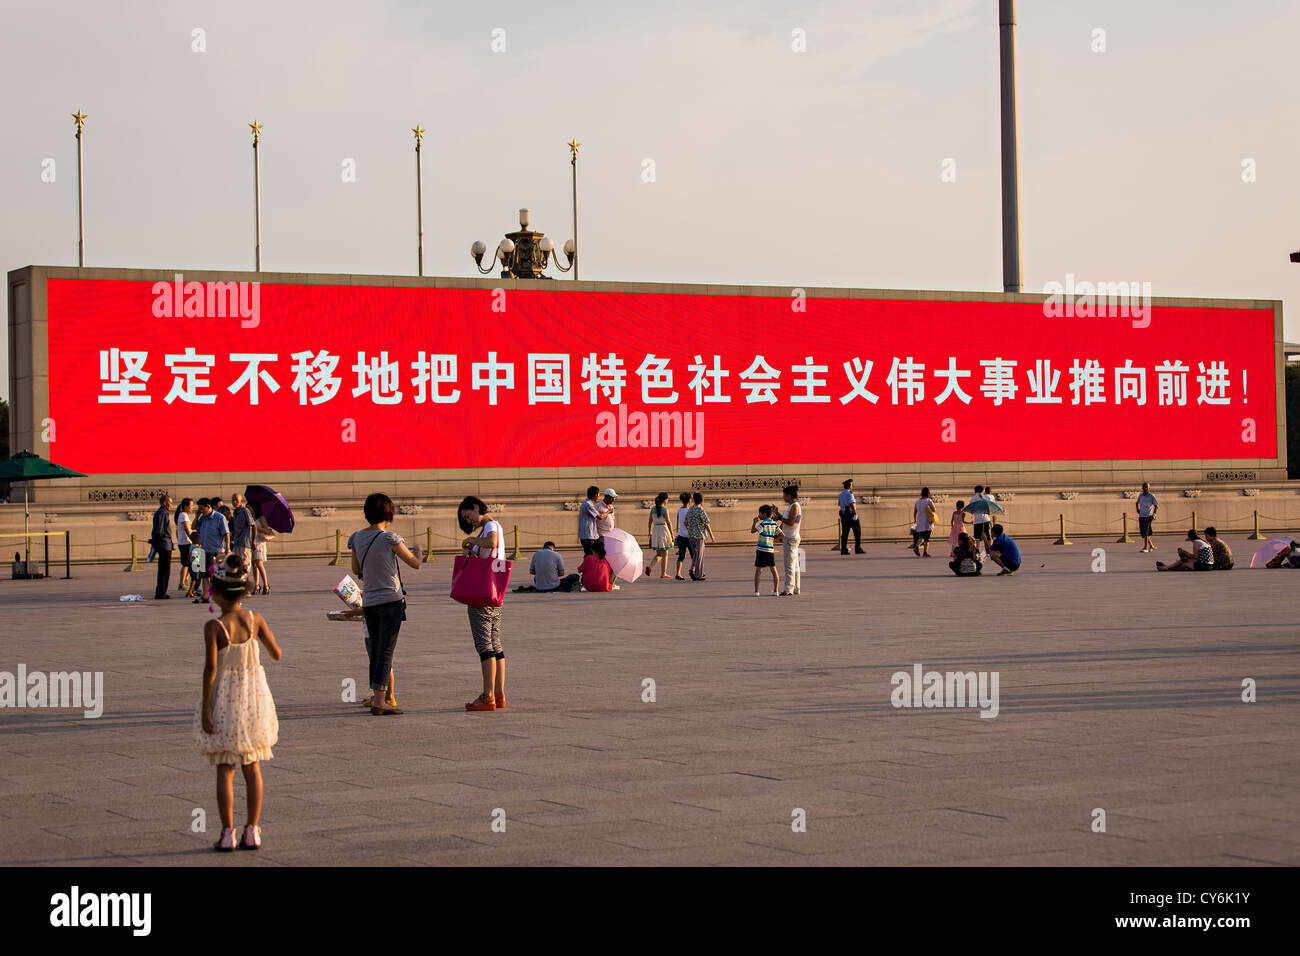 A electronic sign flashes slogans in Tian'an Men square in Beijing, China - Stock Image